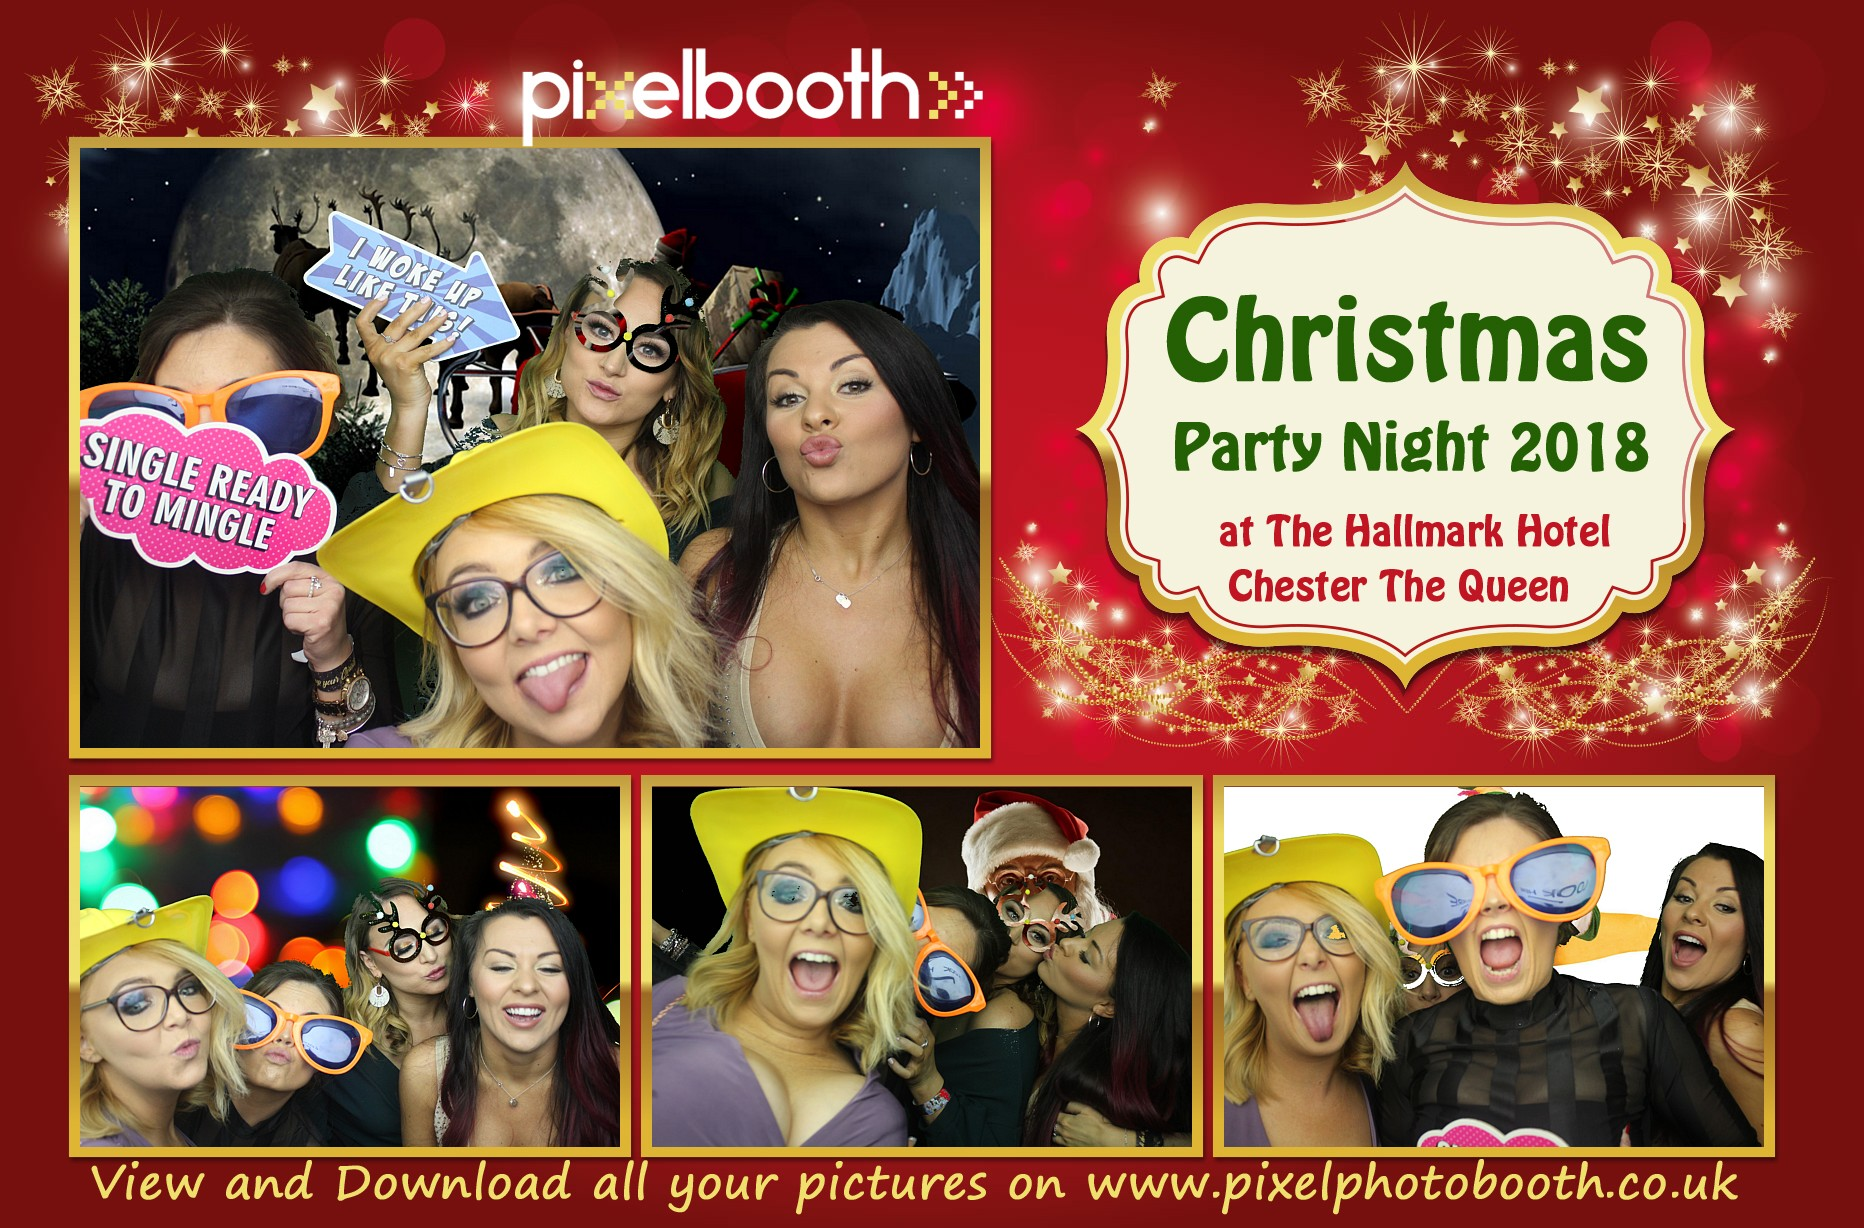 15th Dec 2018: Queen Hotel Christmas Party Night